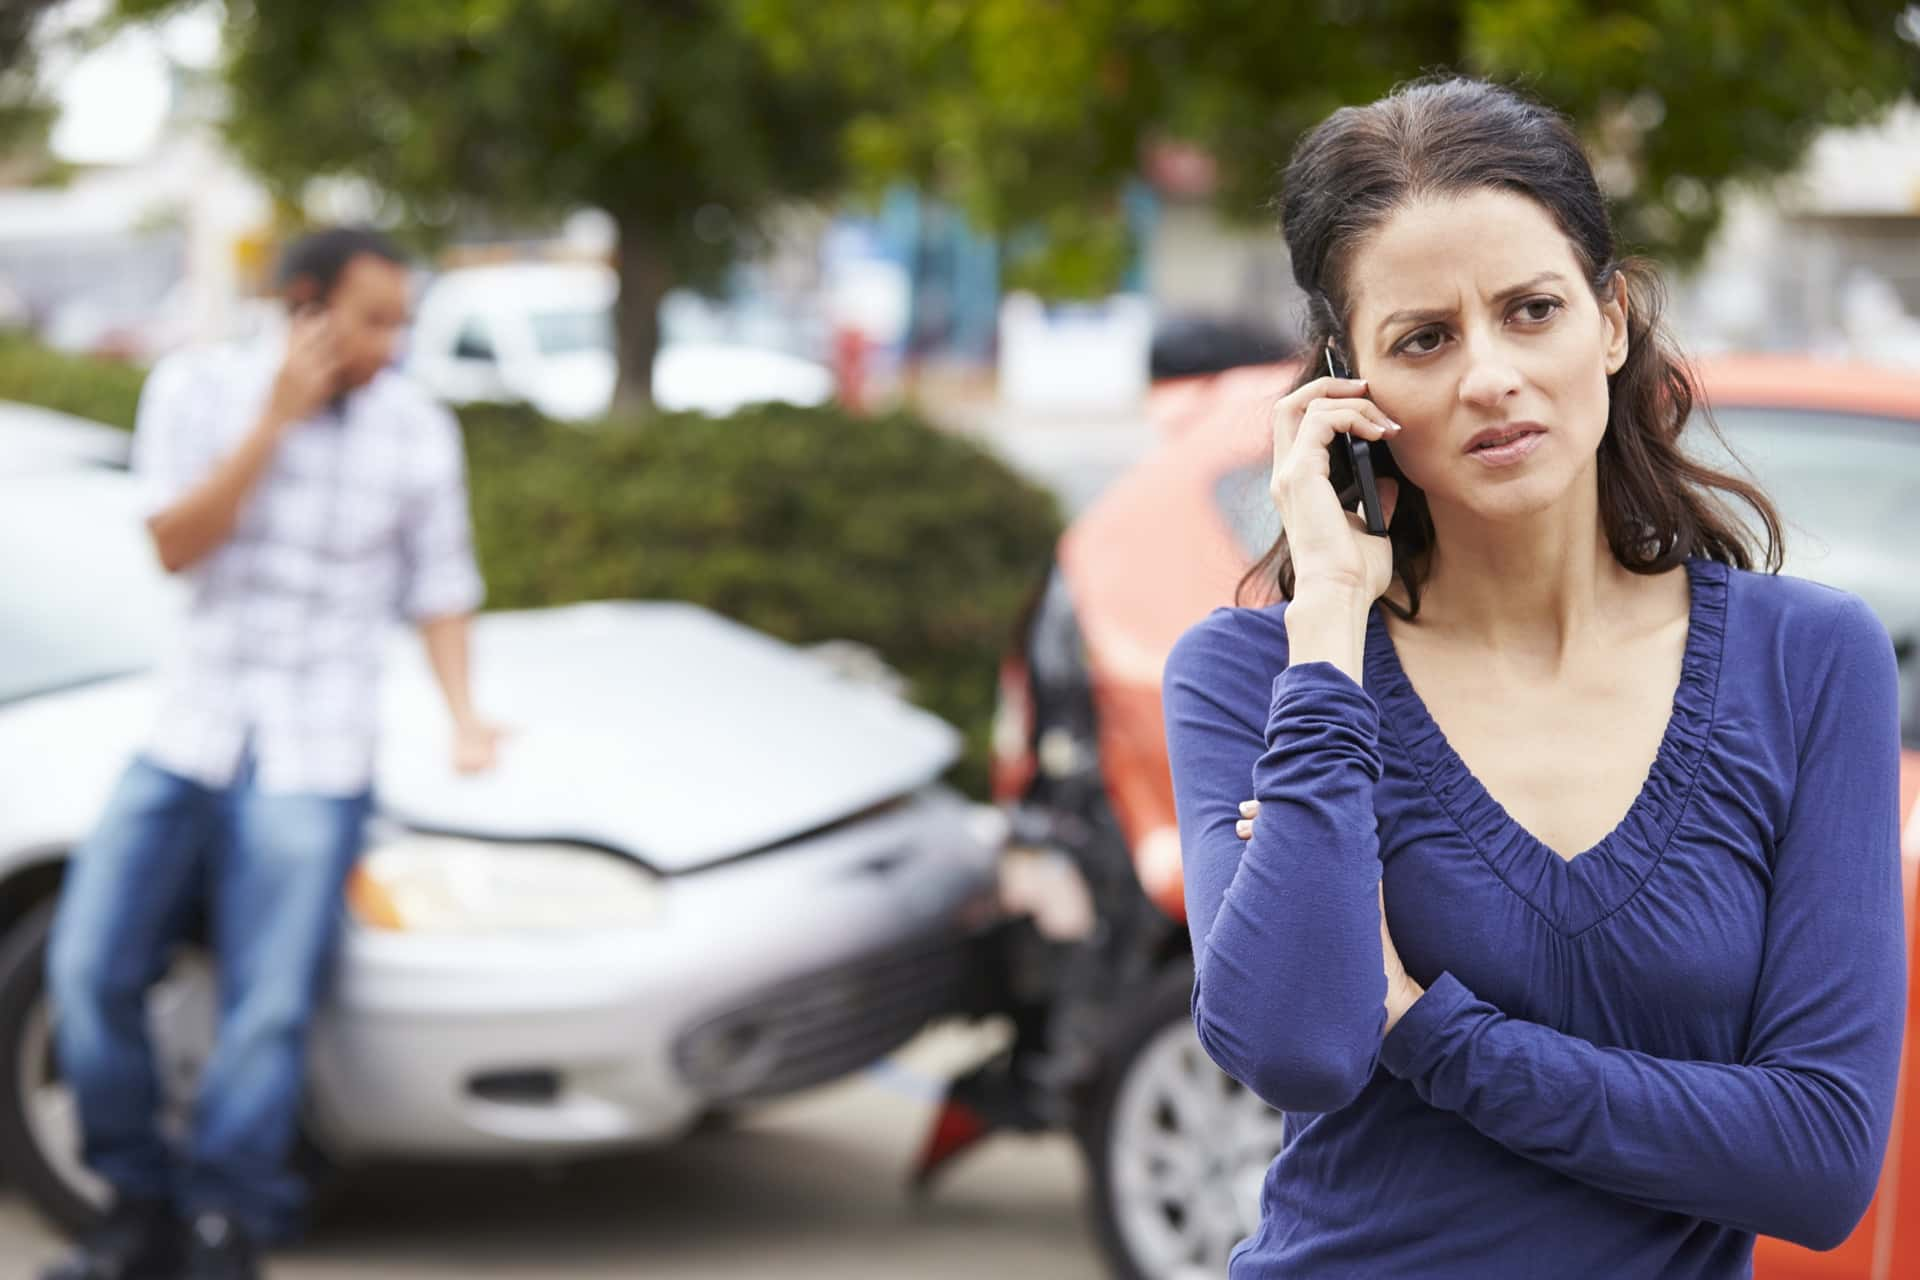 Statute of Limitations for Auto Accident Claims in California